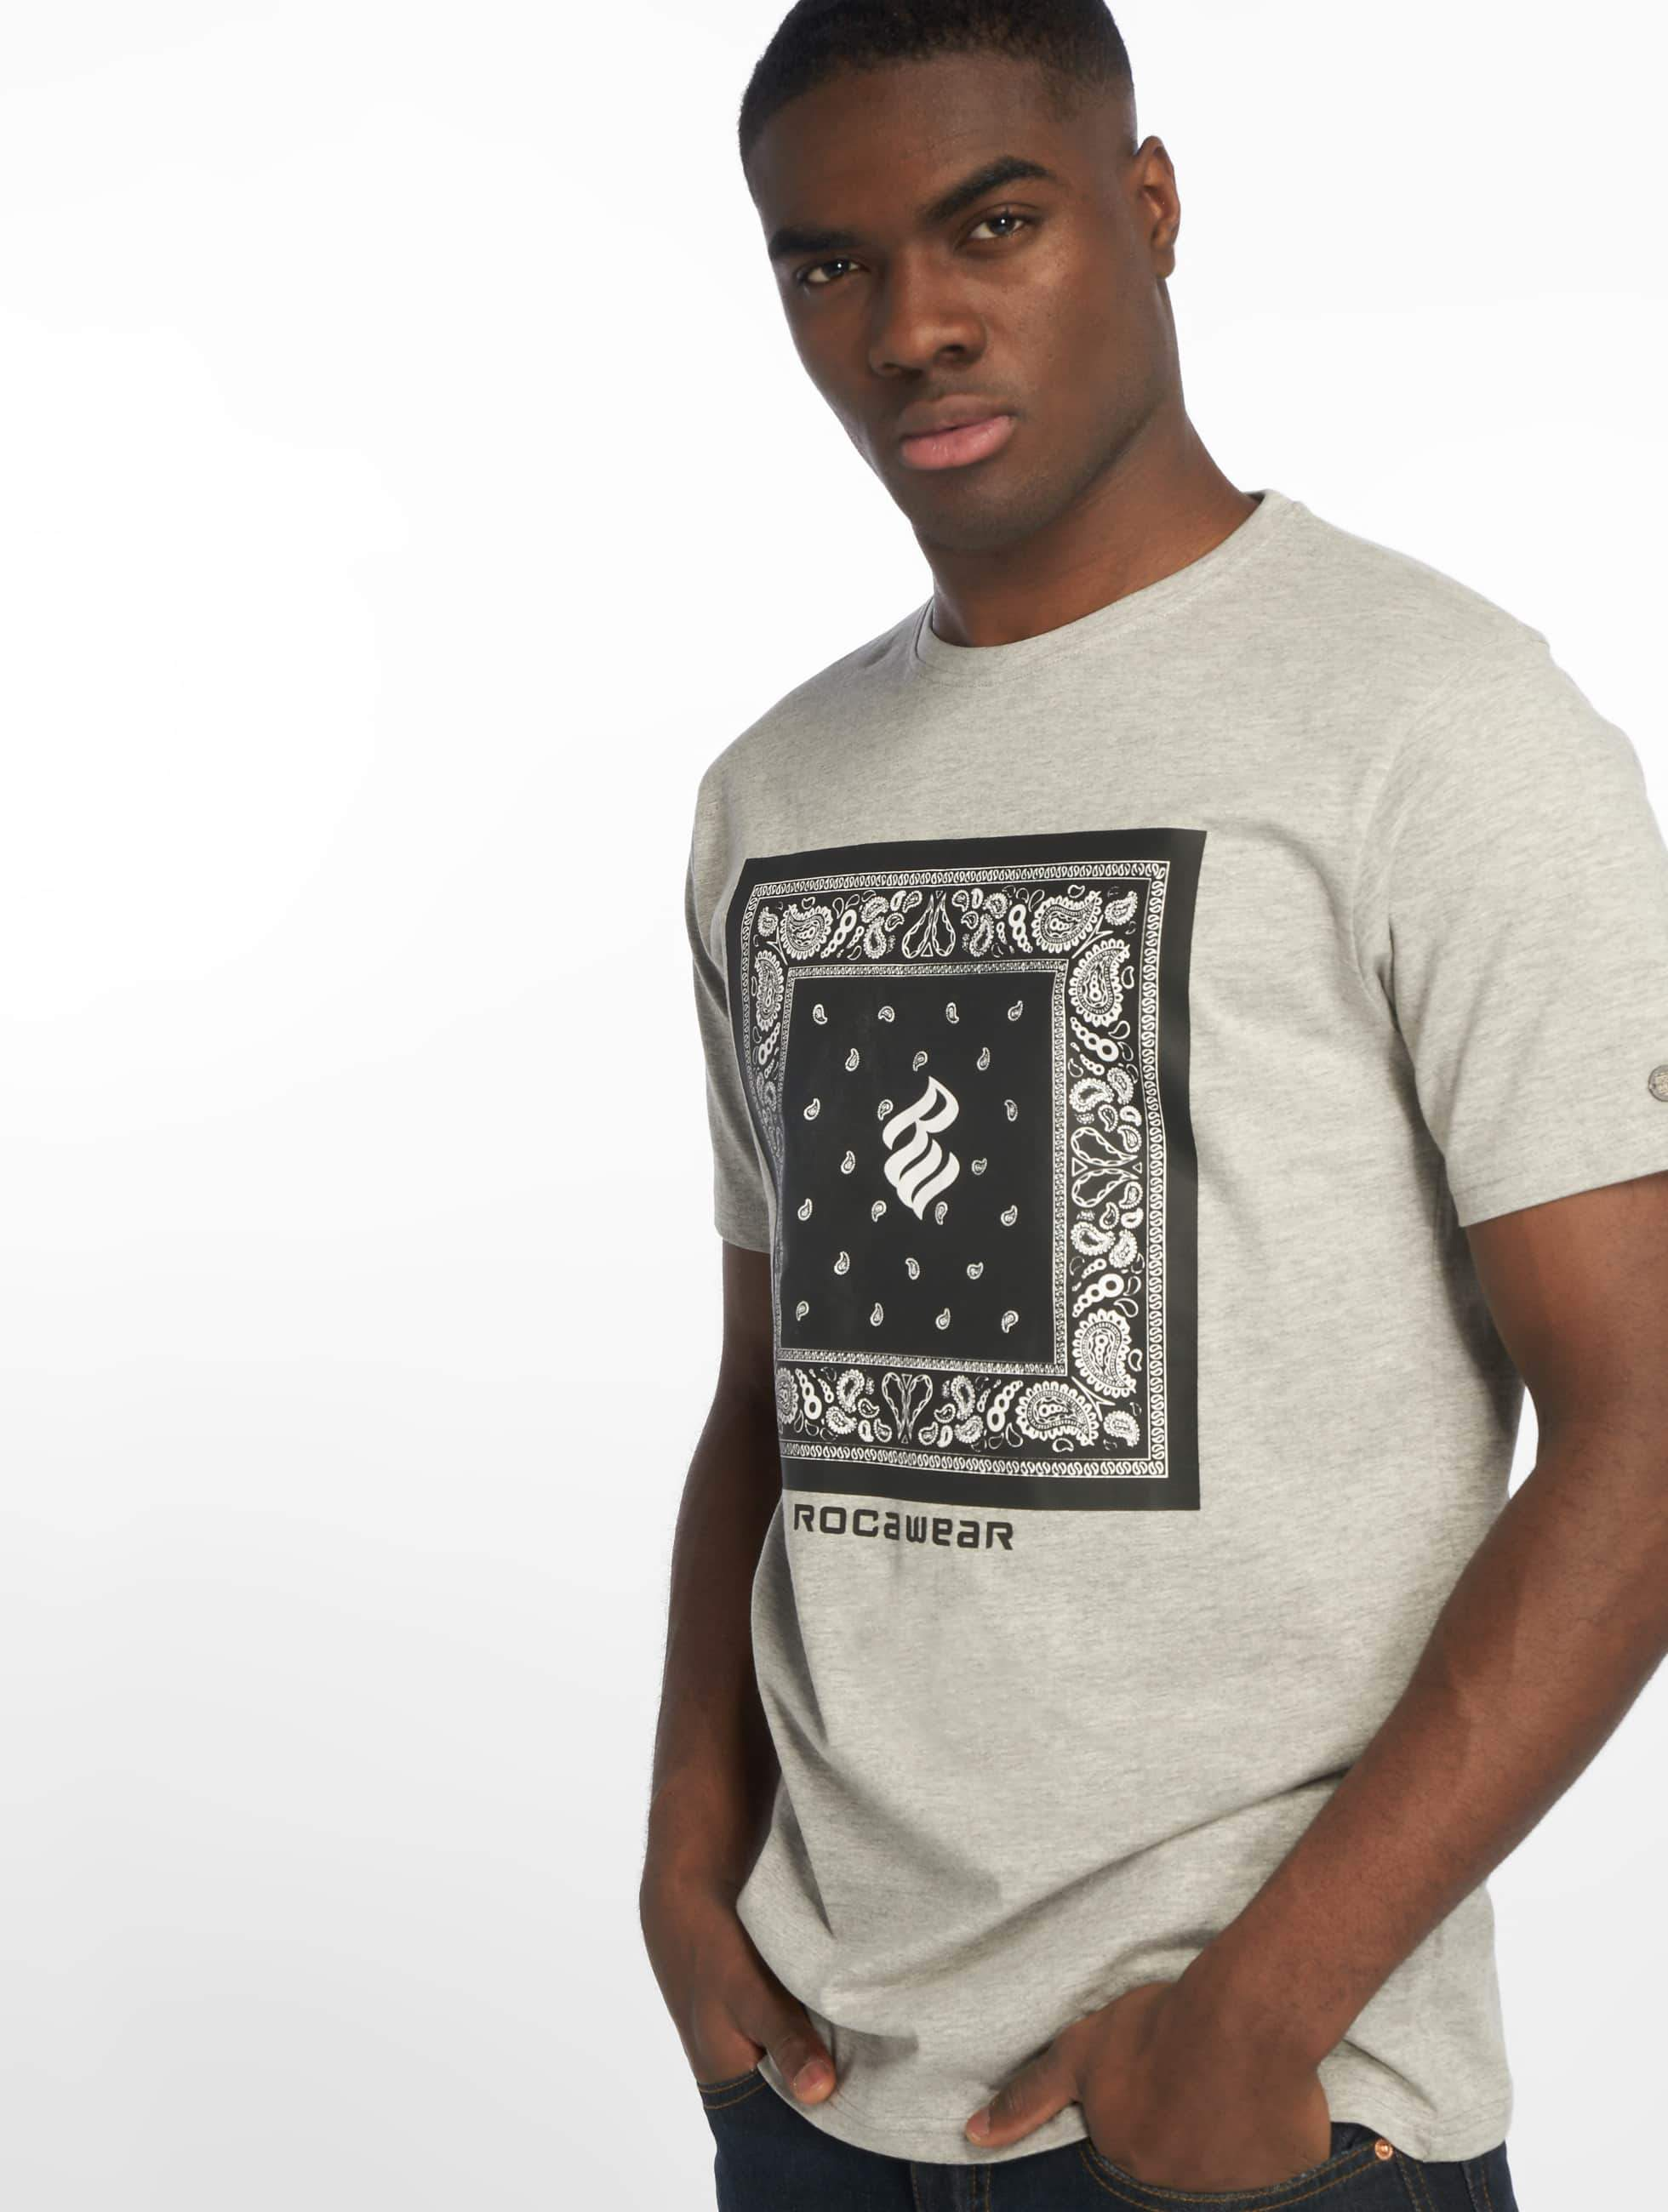 Rocawear / T-Shirt Bandana in grey M